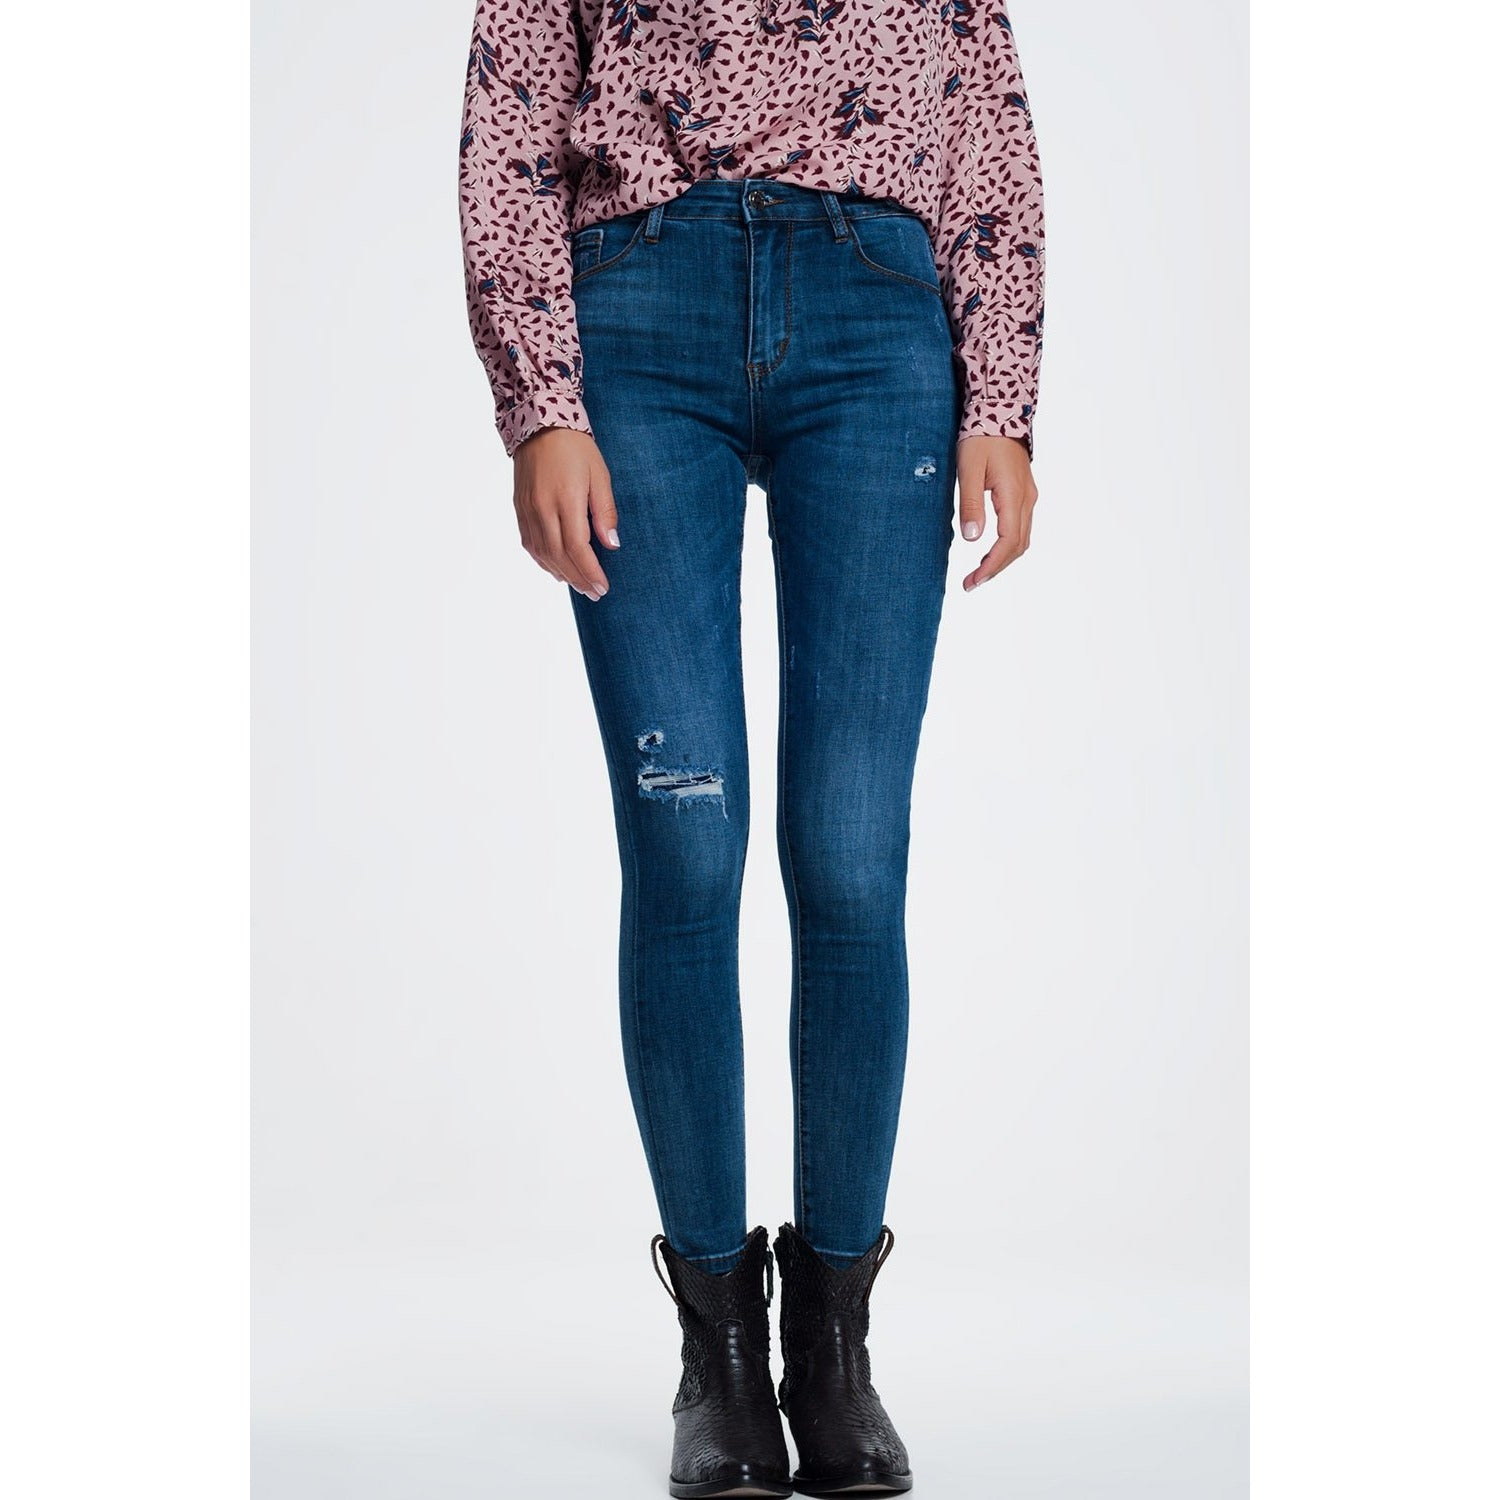 Ripped Skinny Jeans in Blue Denim - Miraposa